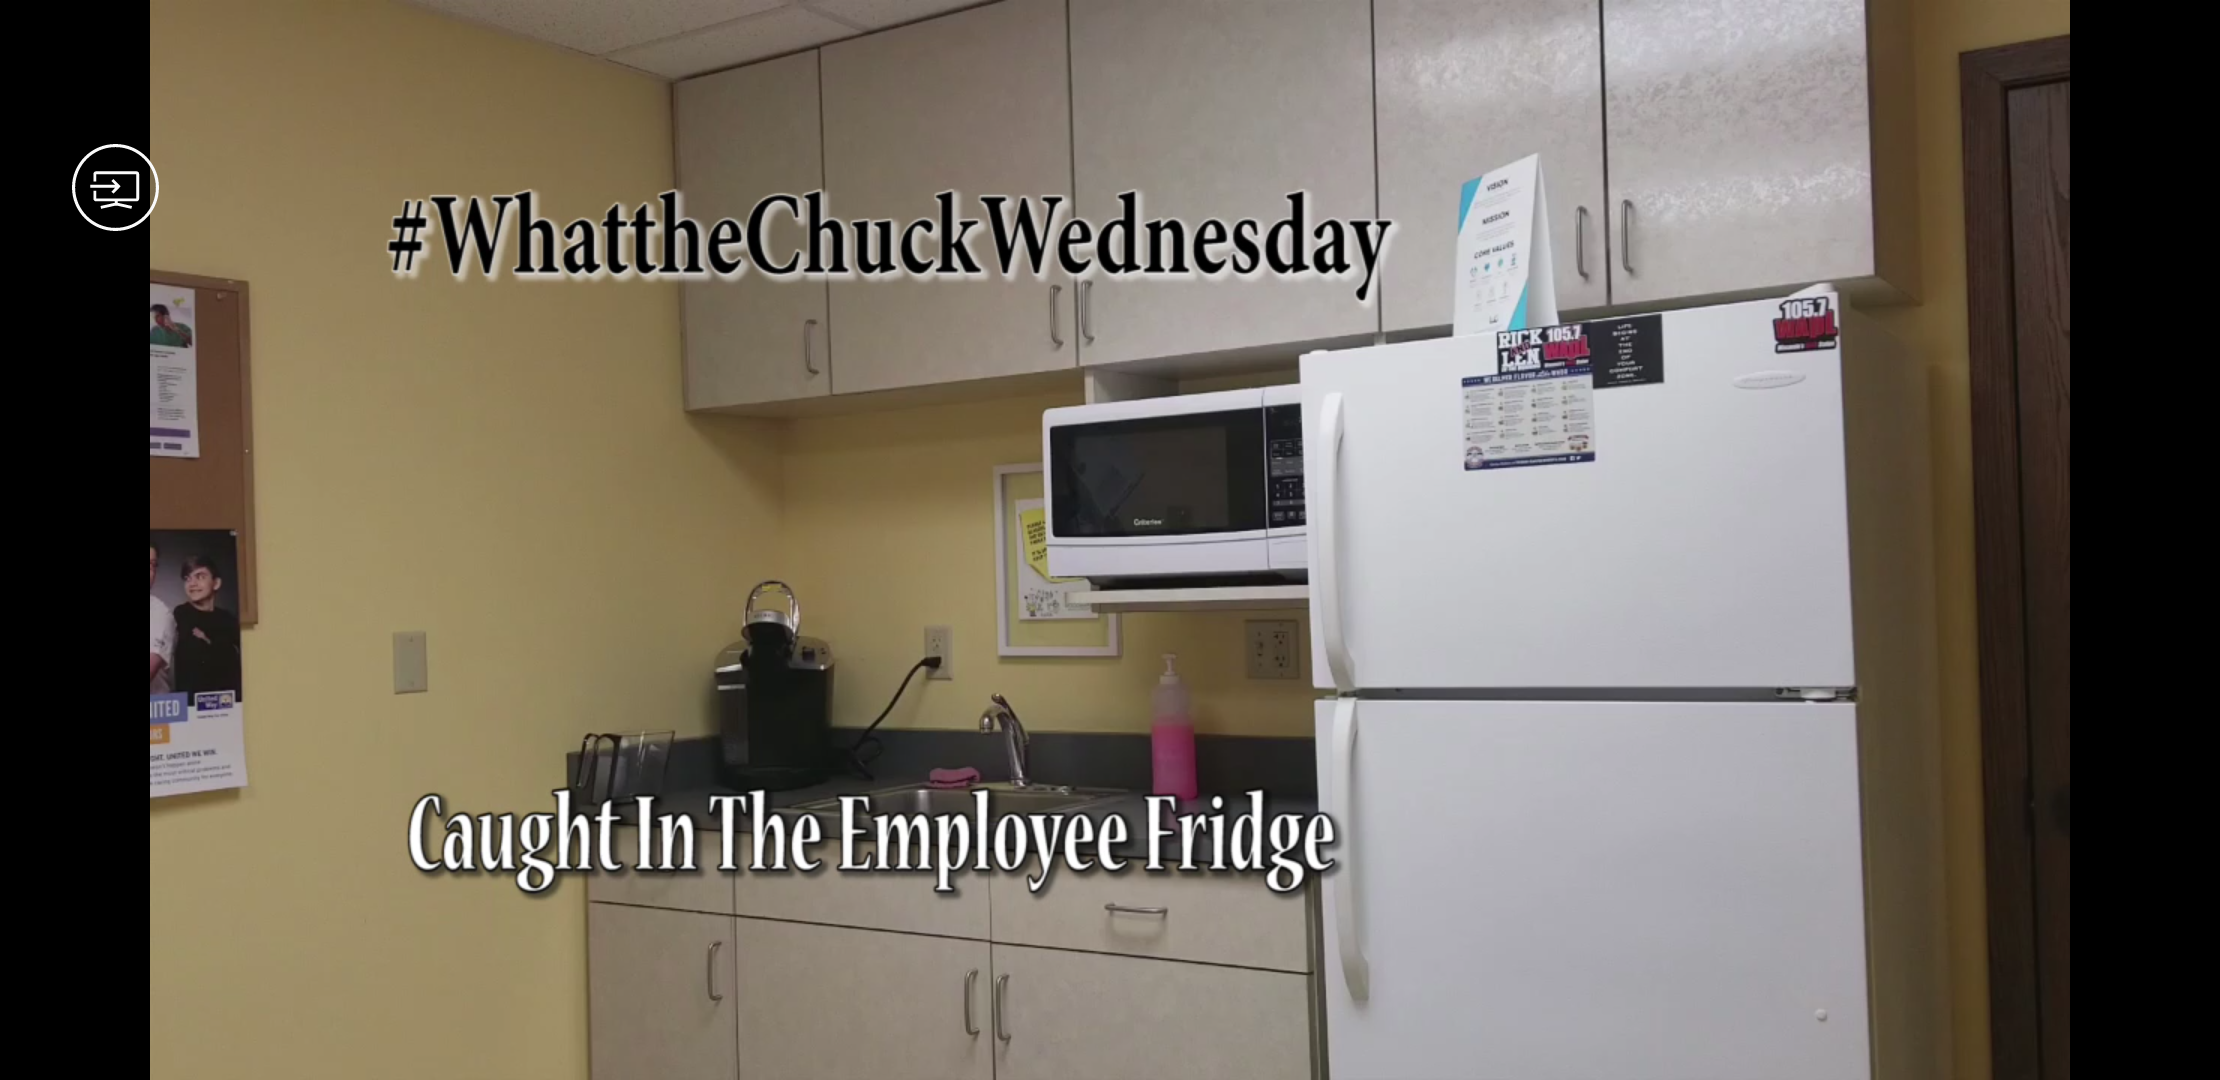 #WhattheChuckWednesday - Caught In The Employee Fridge